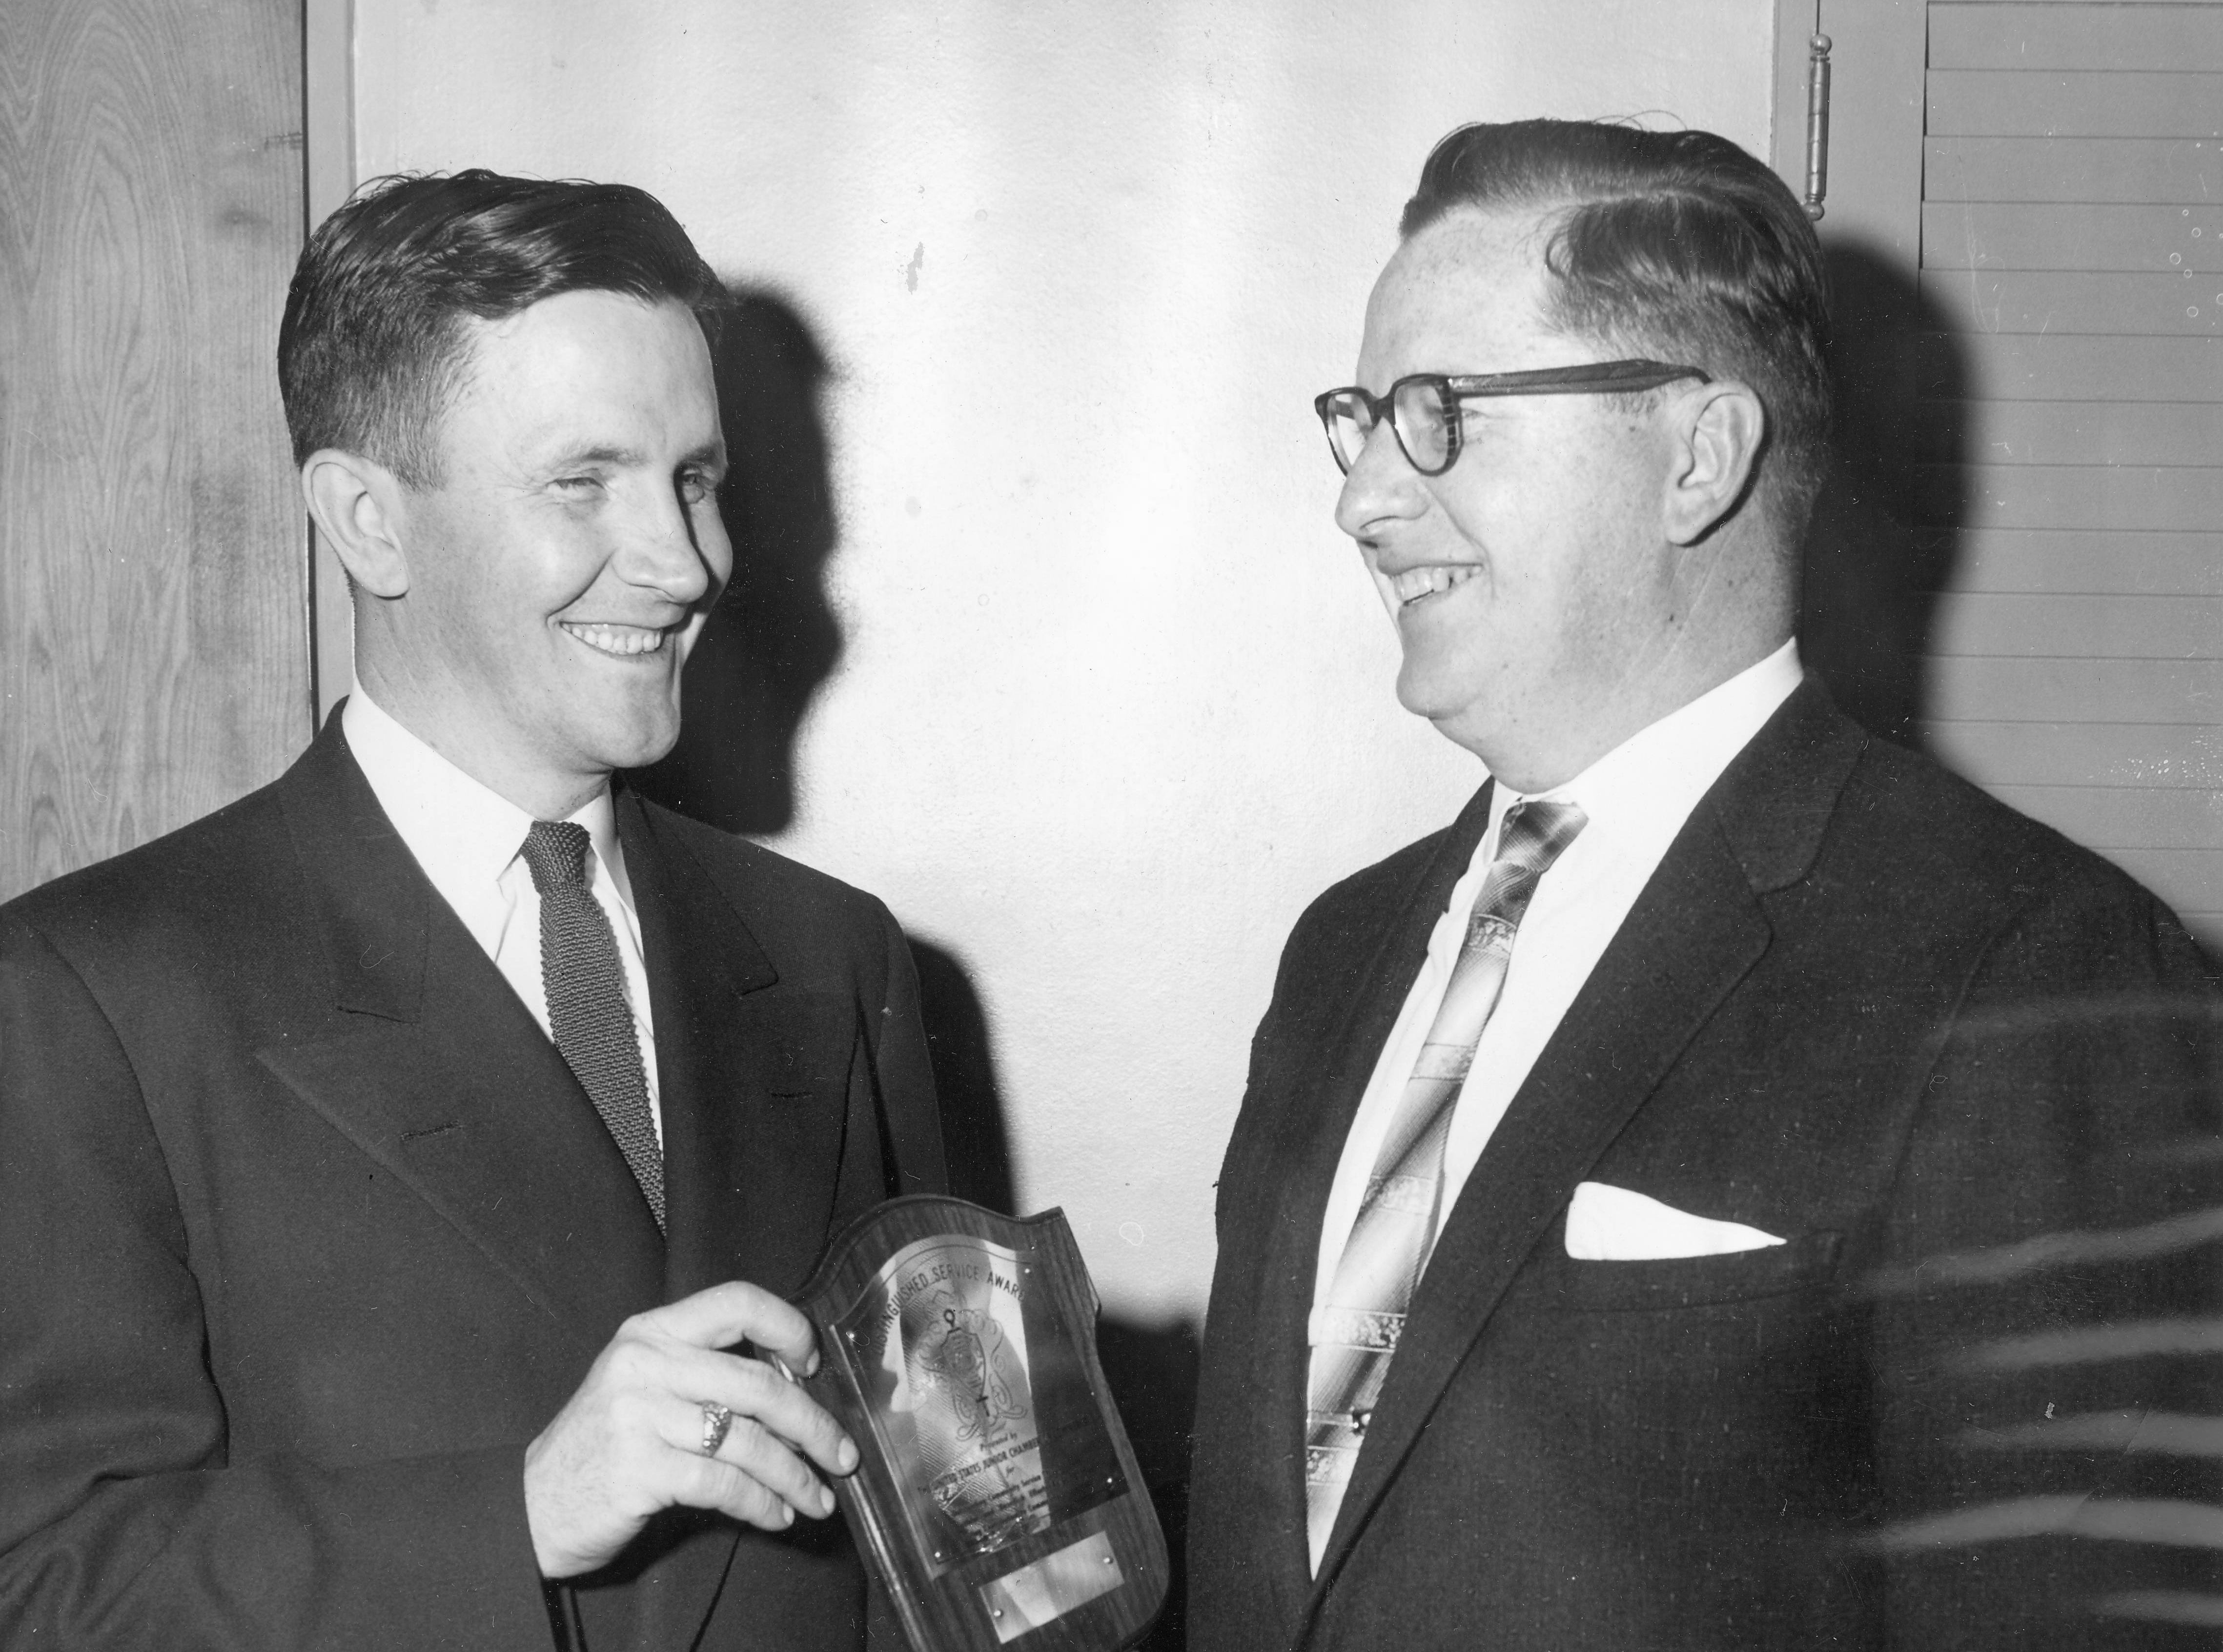 John J. O'Hara, left, was named 1956 man of the year by Kenton County Jaycees. Right, Avery Dotson, the 1955 man of the year, made the presentation.